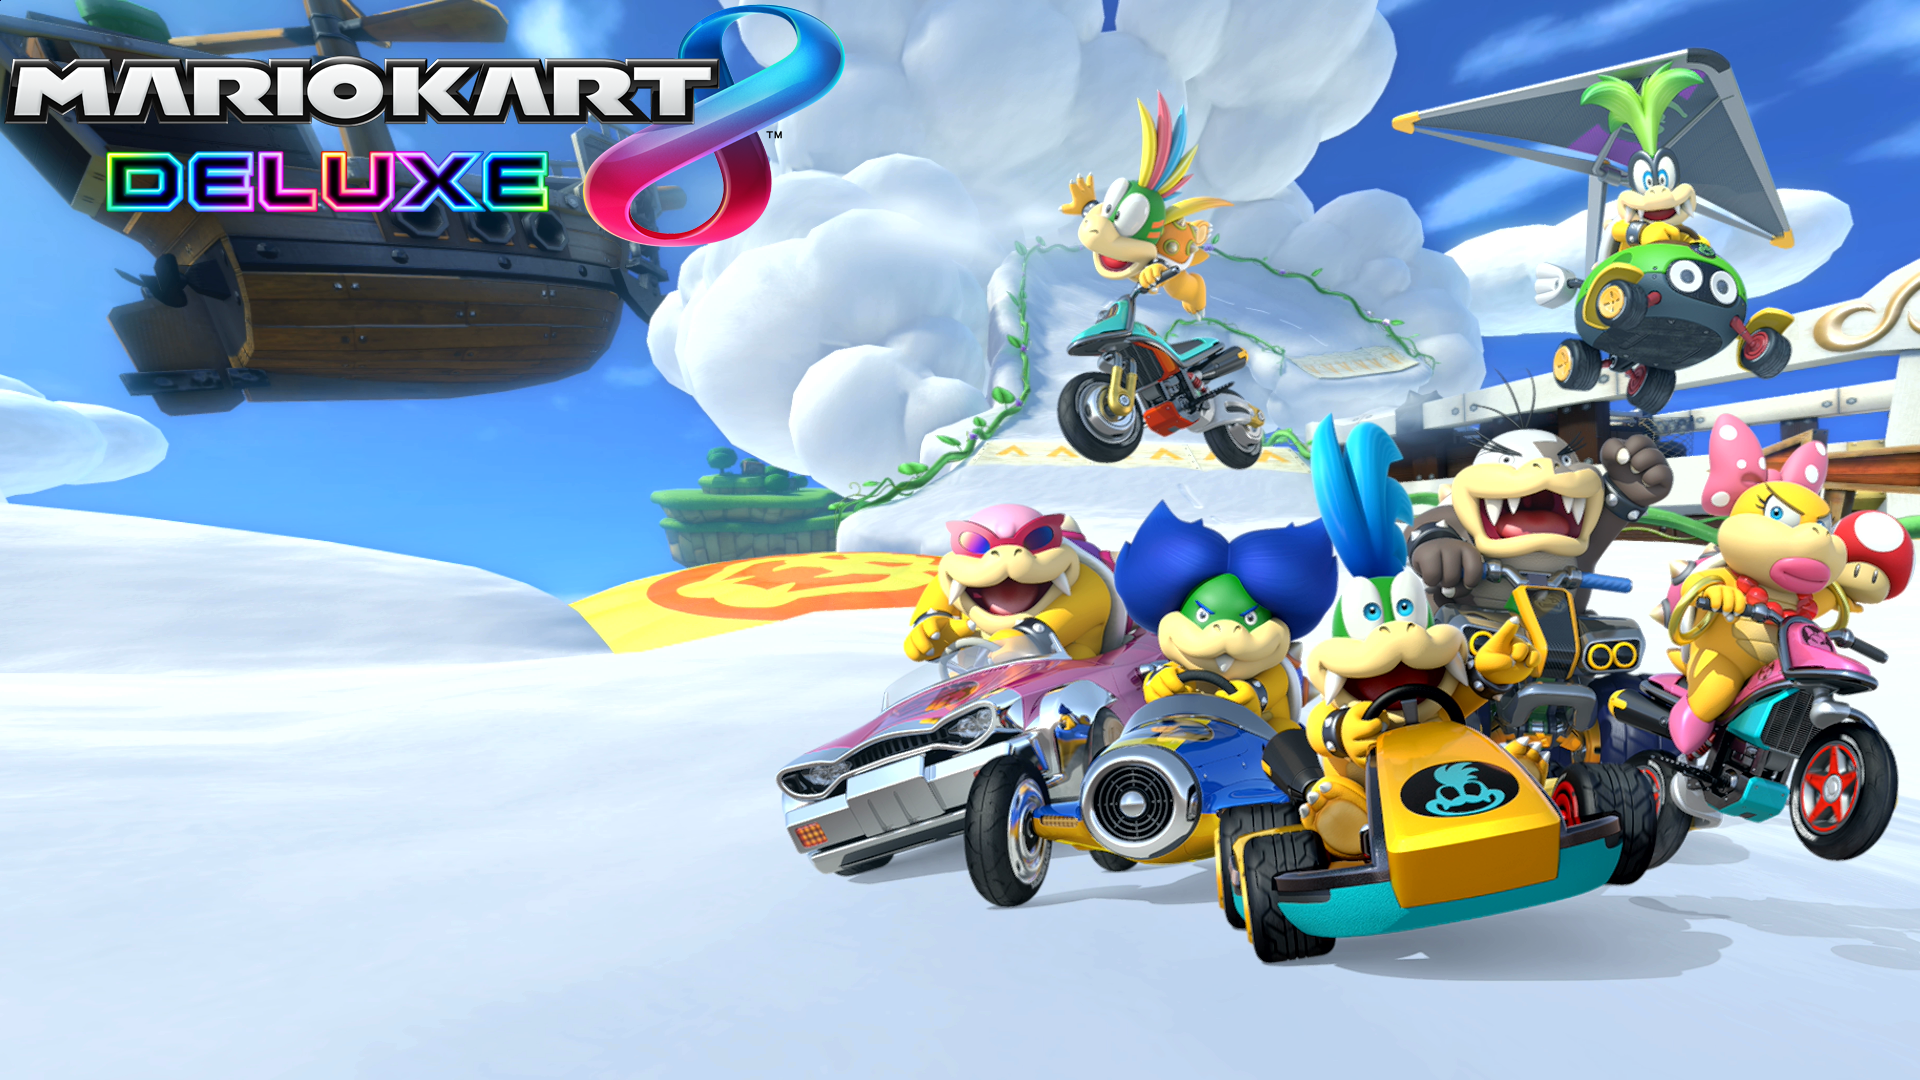 Mario Kart 8 Deluxe Koopalings Wallpaper Hd Wallpaper Background